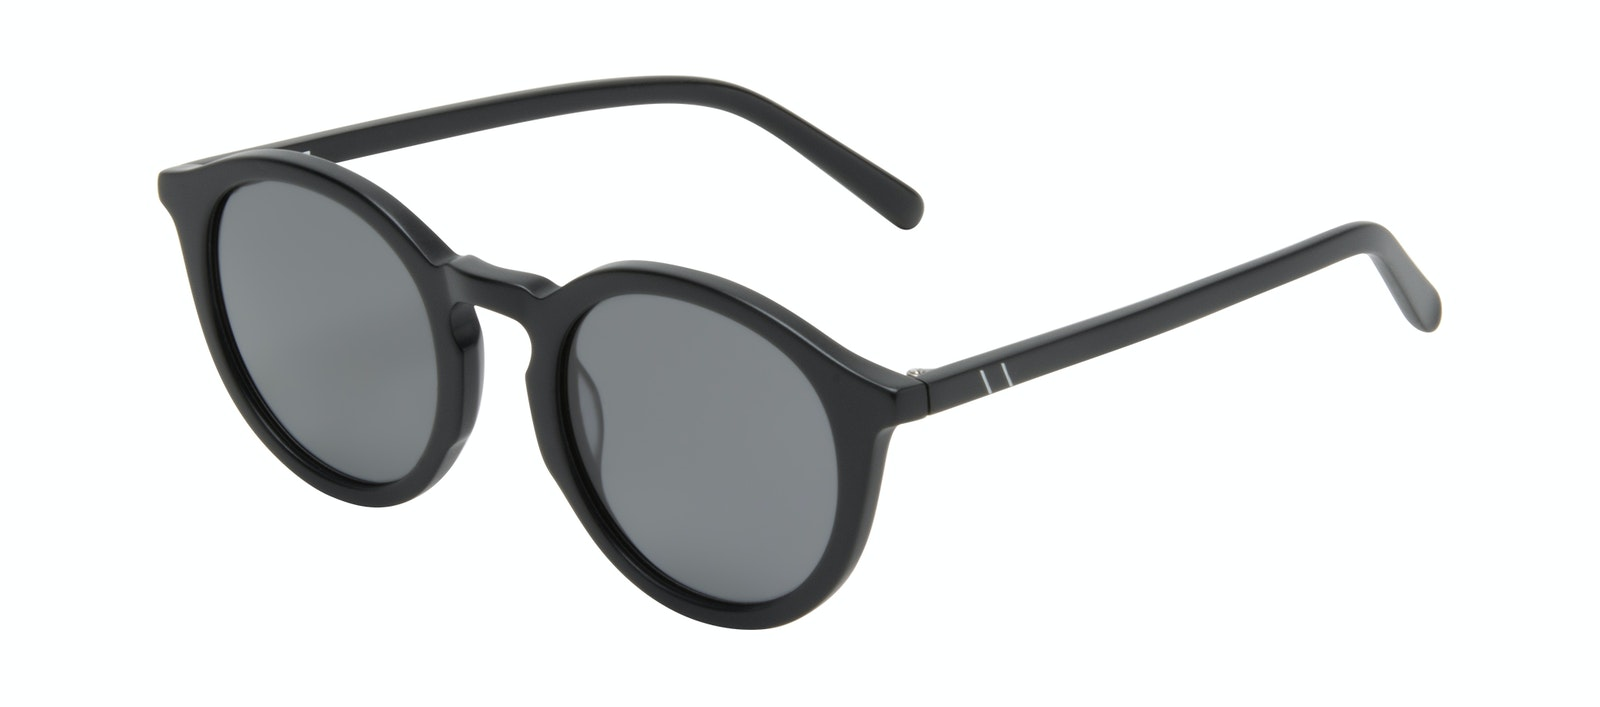 Affordable Fashion Glasses Round Sunglasses Men Thrill Onyx Matte Tilt